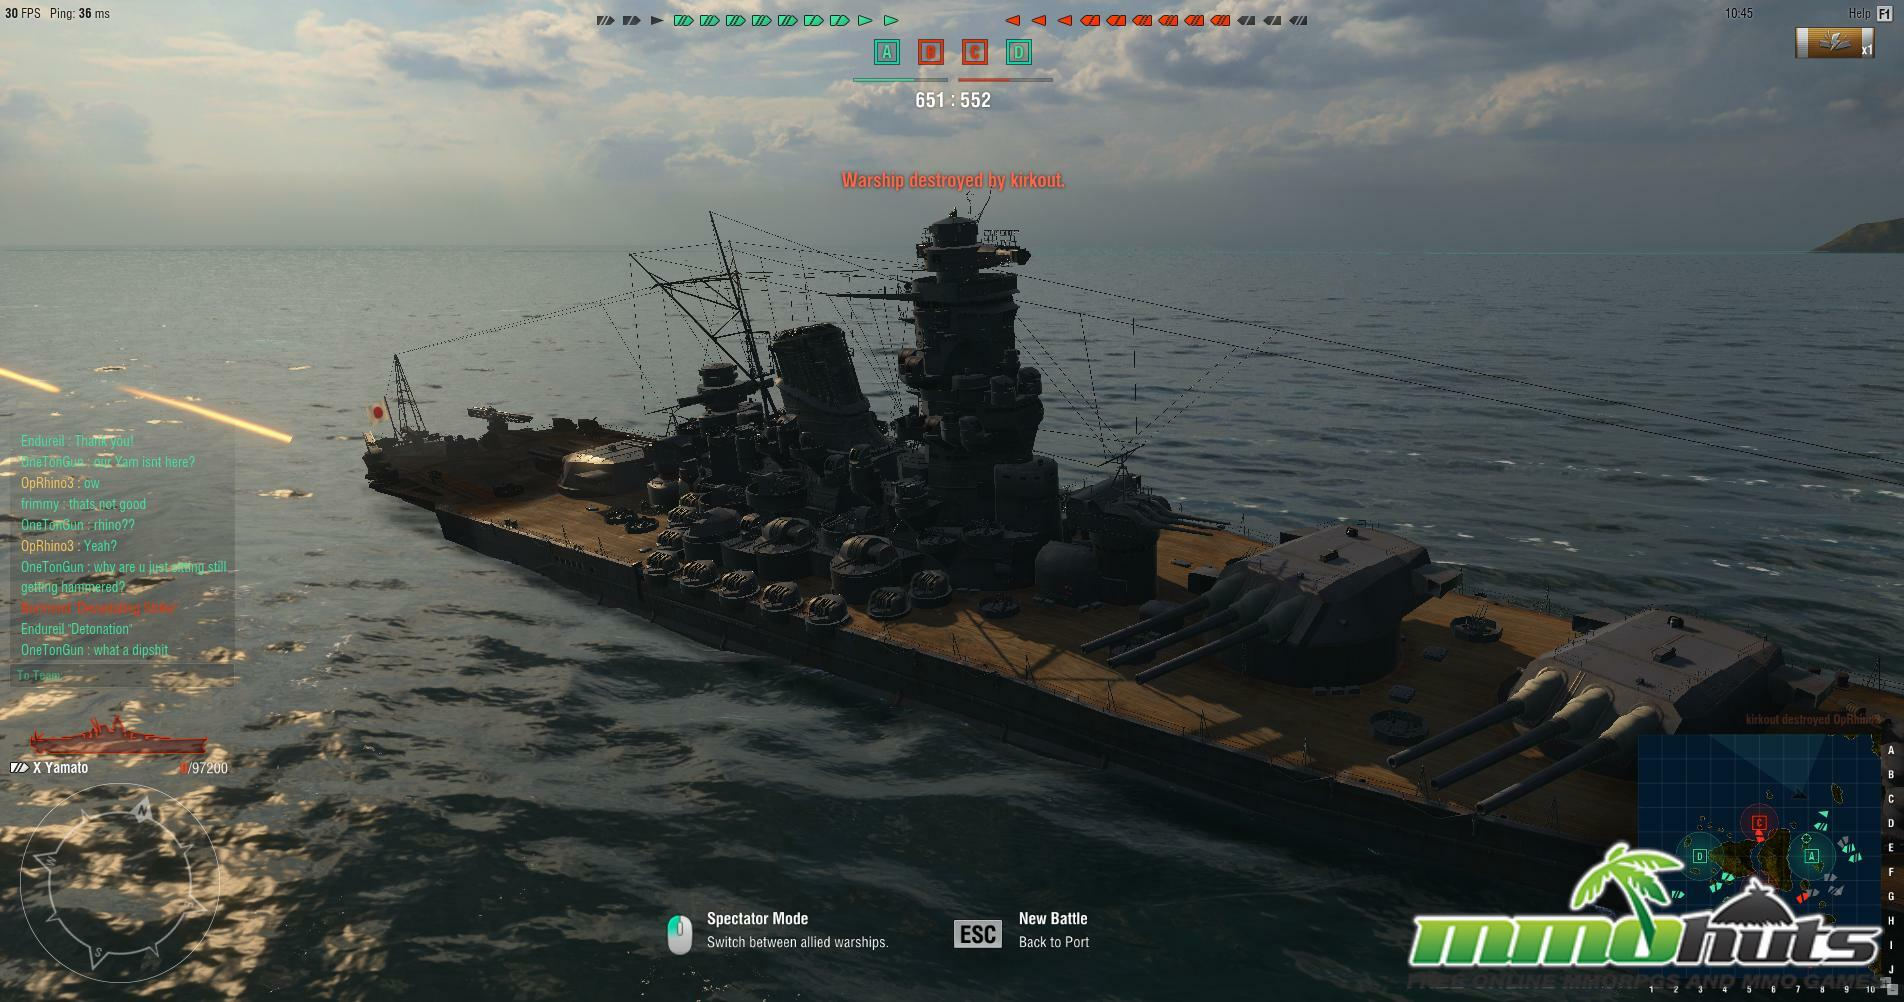 worldofwarships 2015-10-01 16-37-51-28